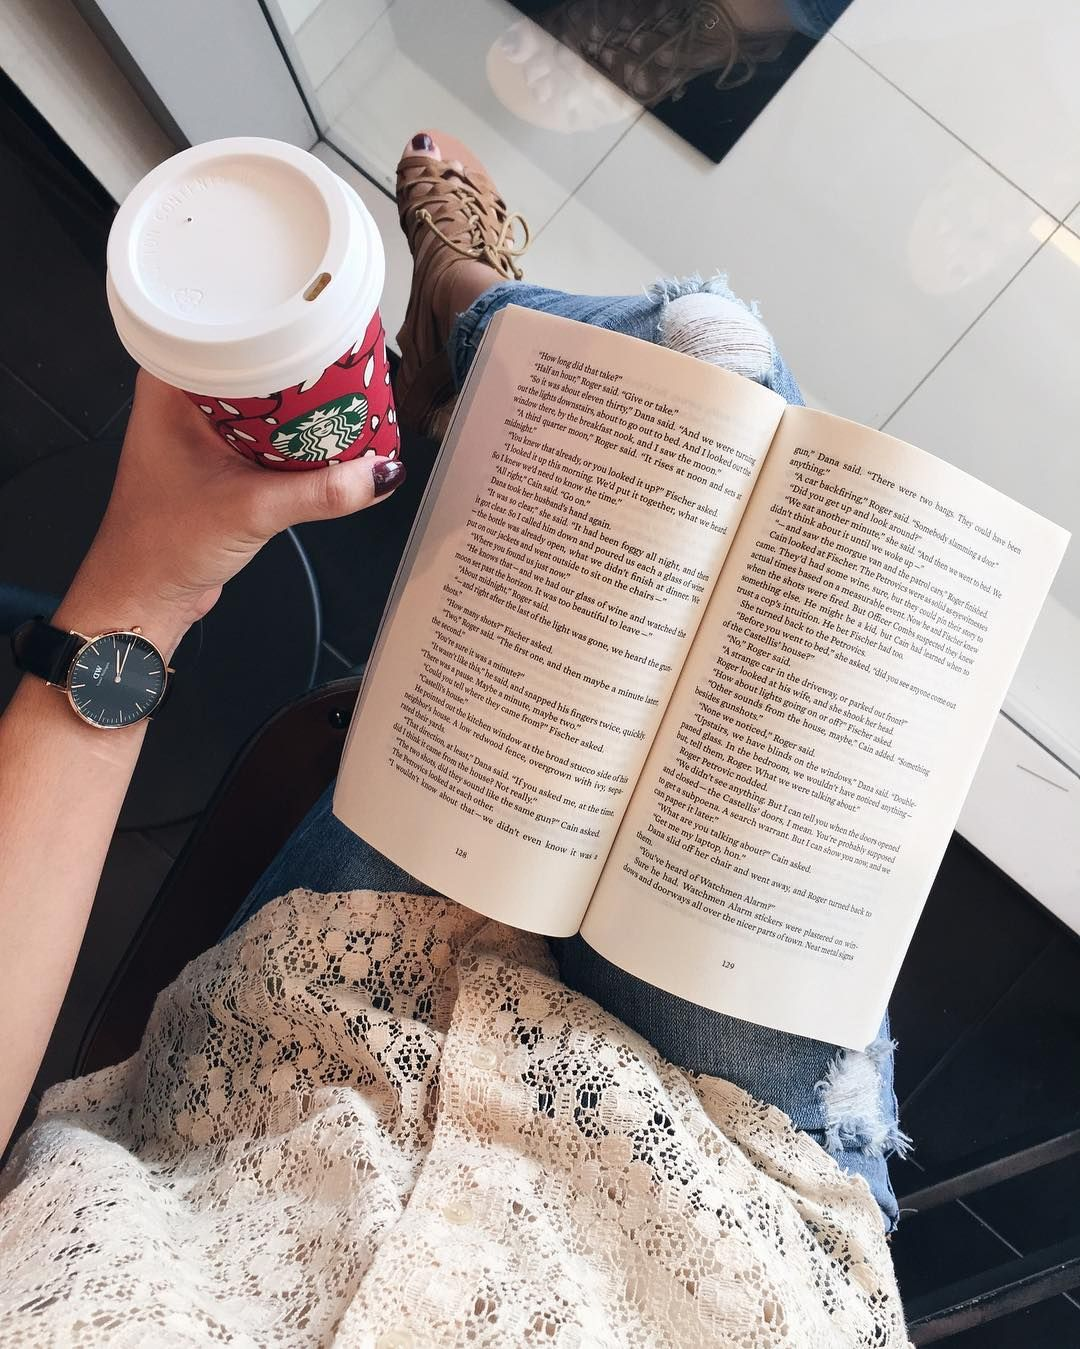 Caramel Brûlée Latte with a good fantasy book  . It's been a while since I've read a Fantasy novel so I was hesitant when I started EVER THE HUNTED but I got hooked on the story very quickly. I'm only 14% in but it's so good! . You can get 25% off on your @danielwellington watch  strap of your choice or cuff! Use my code BOOKSDW for 15% off and they have their Christmas promo of 10% off! Take advantage for those Christmas presents!  #danielwellington #DWClassicBlack #dwpickoftheday